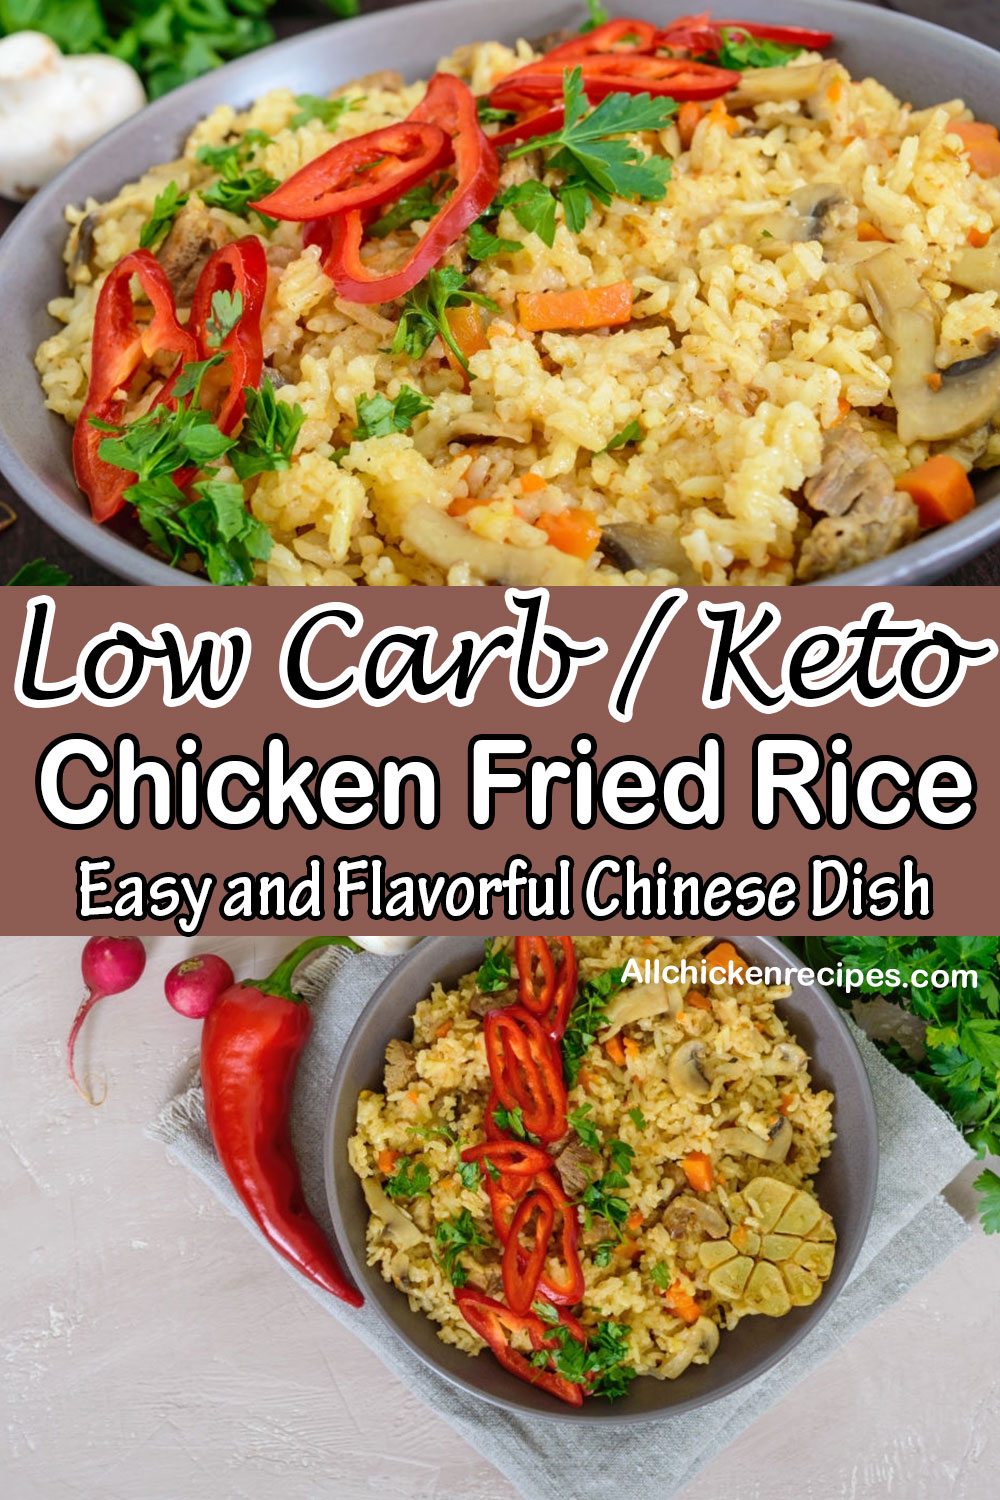 Low carb keto chicken fried rice